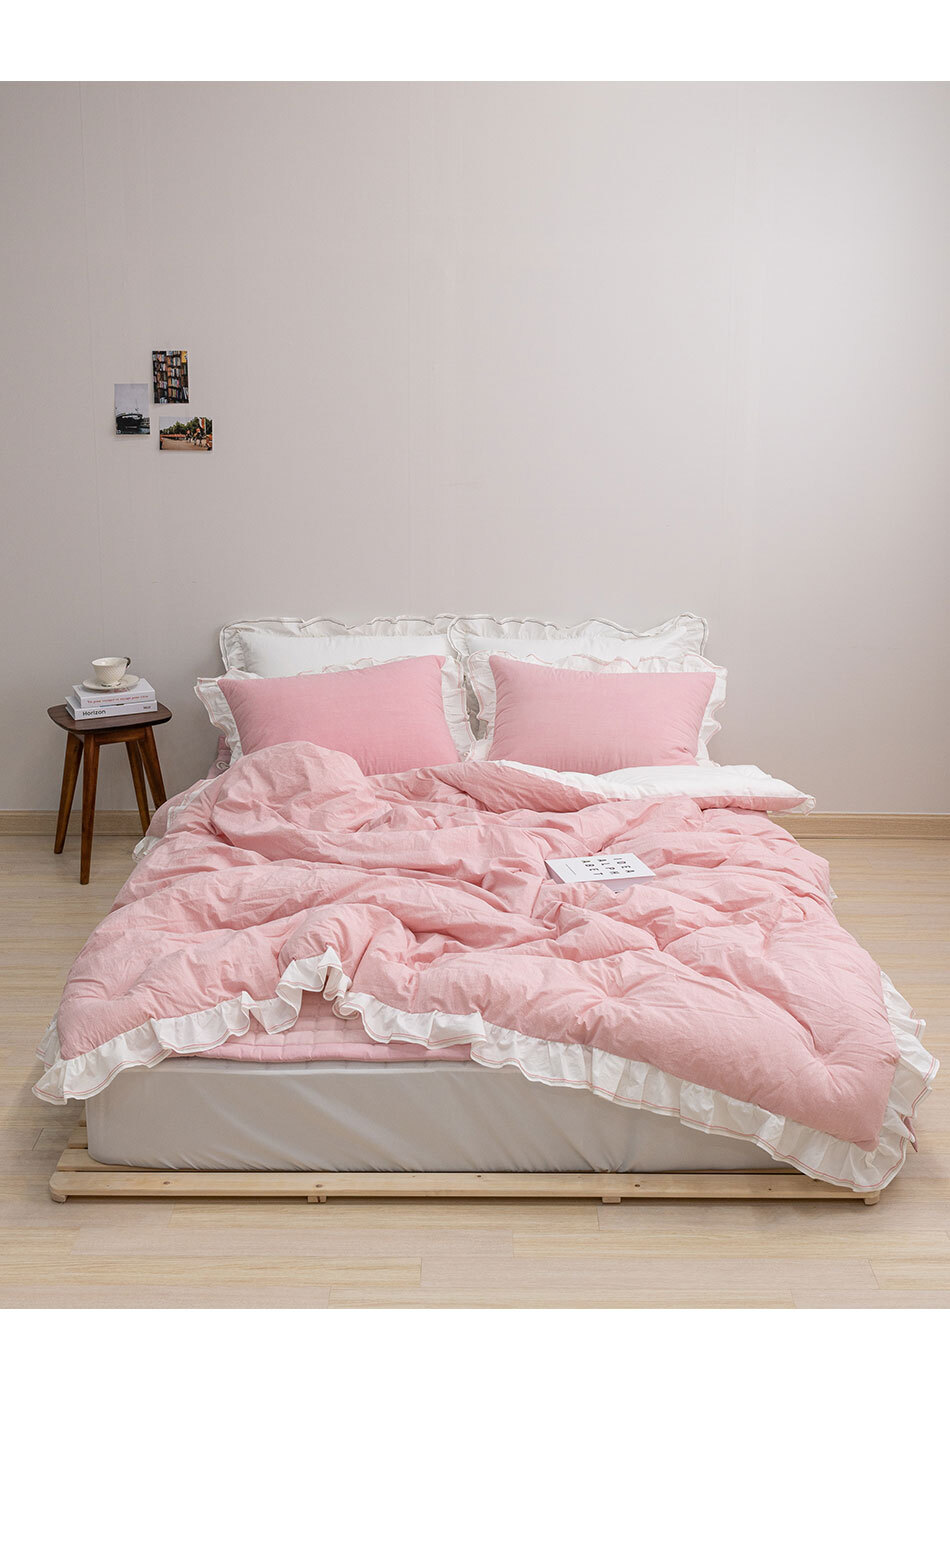 stay_bed_pink5.jpg